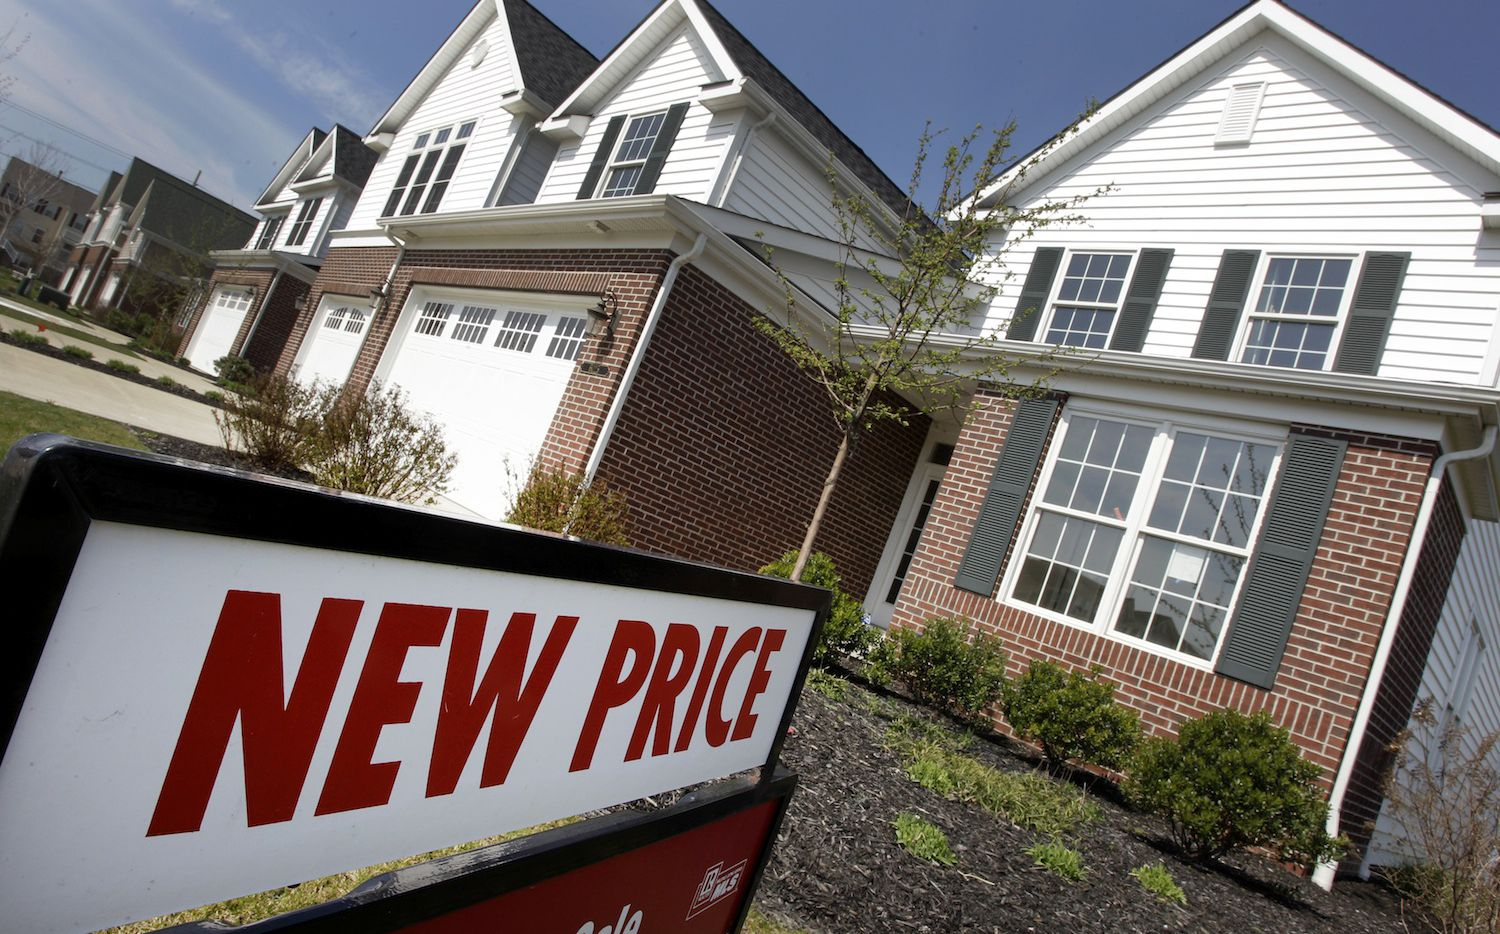 D-FW is one of the U.S. markets where home prices are unsustainable, according to Fitch Ratings.